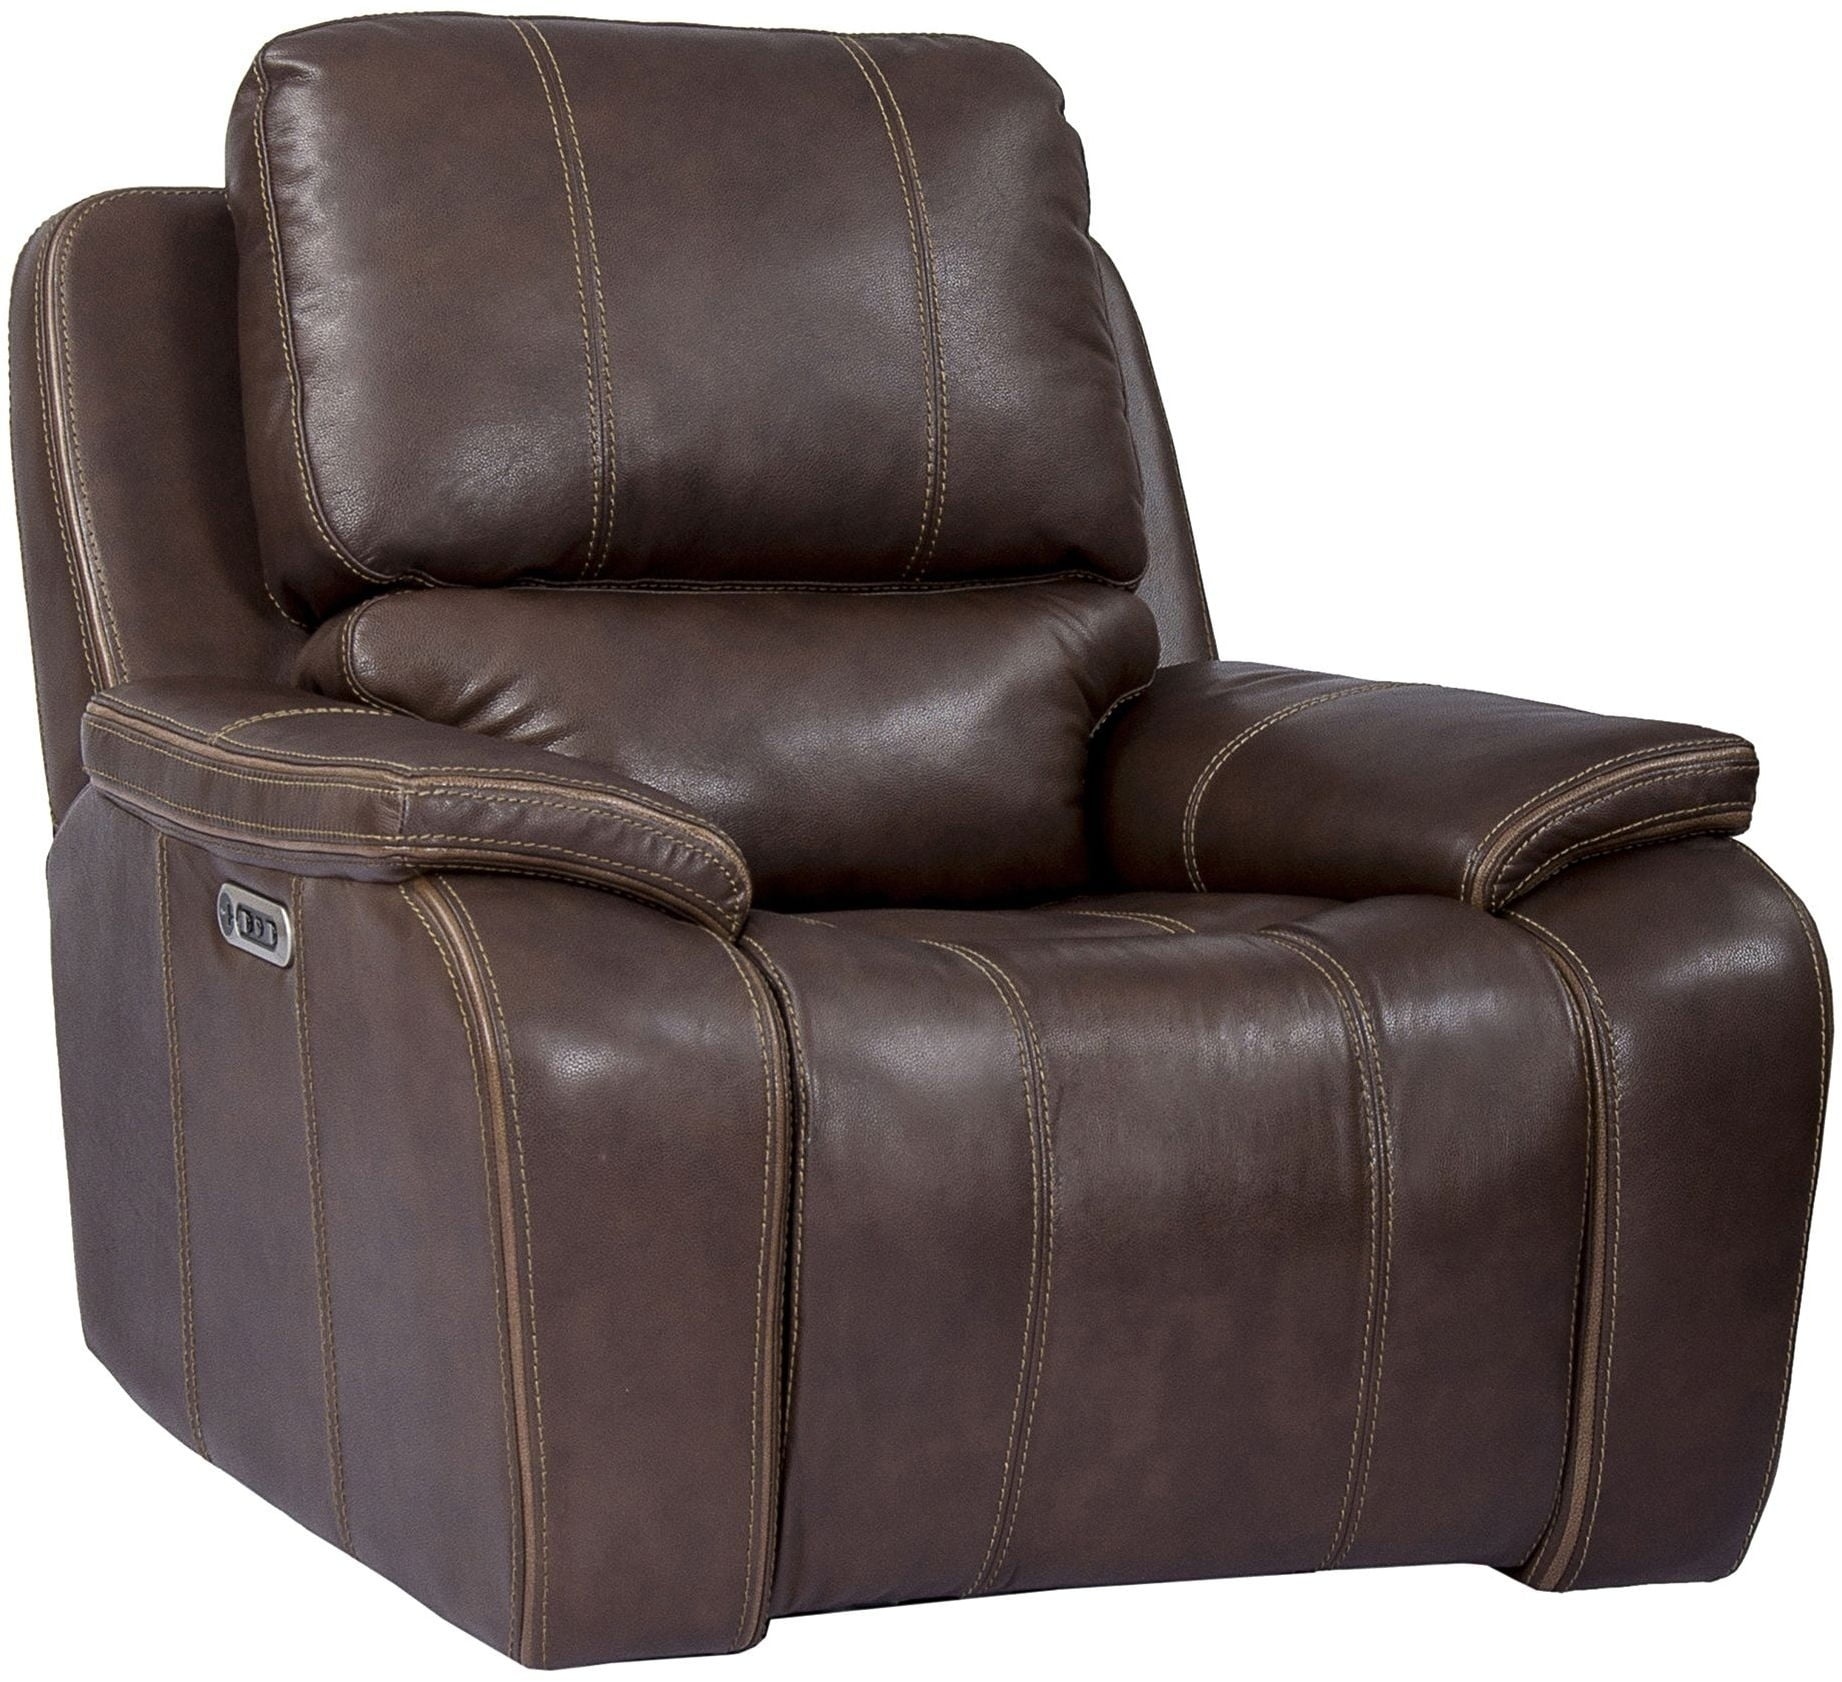 Jennings Waylon Mocha Power Recliner From Prime Resource inside Waylon 3 Piece Power Reclining Sectionals (Image 13 of 30)